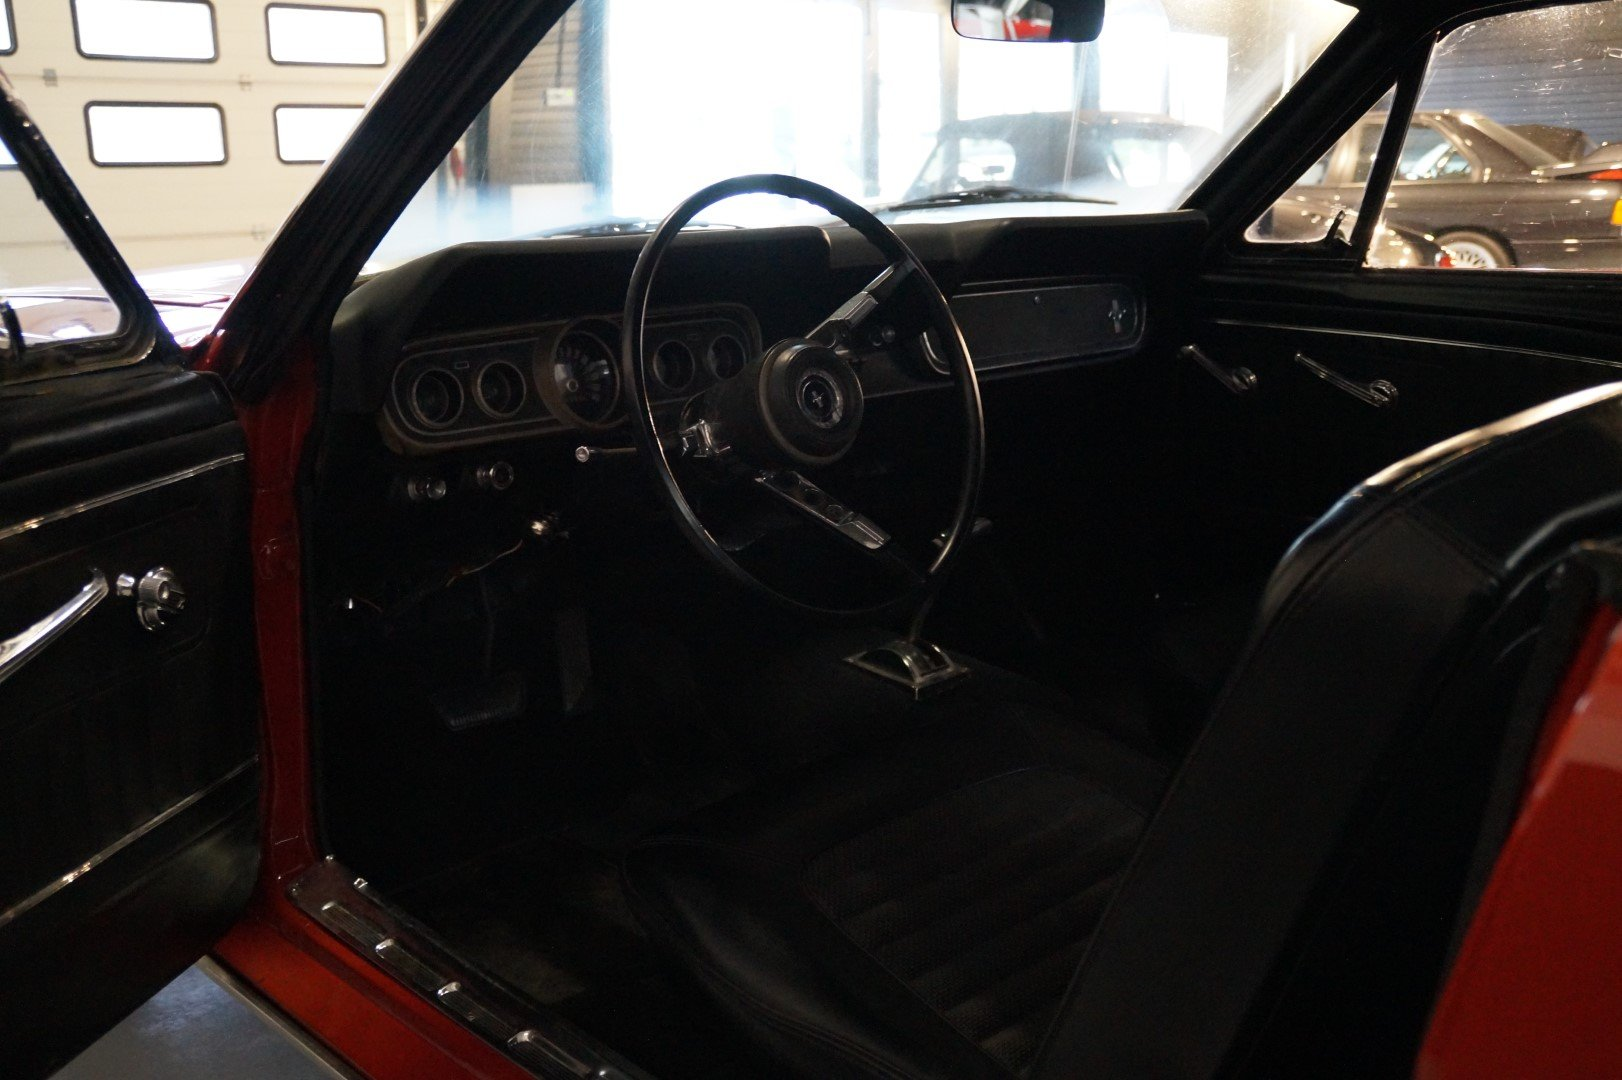 FORD MUSTANG V8 Coupe Nice Driver (1966) For Sale (picture 3 of 6)